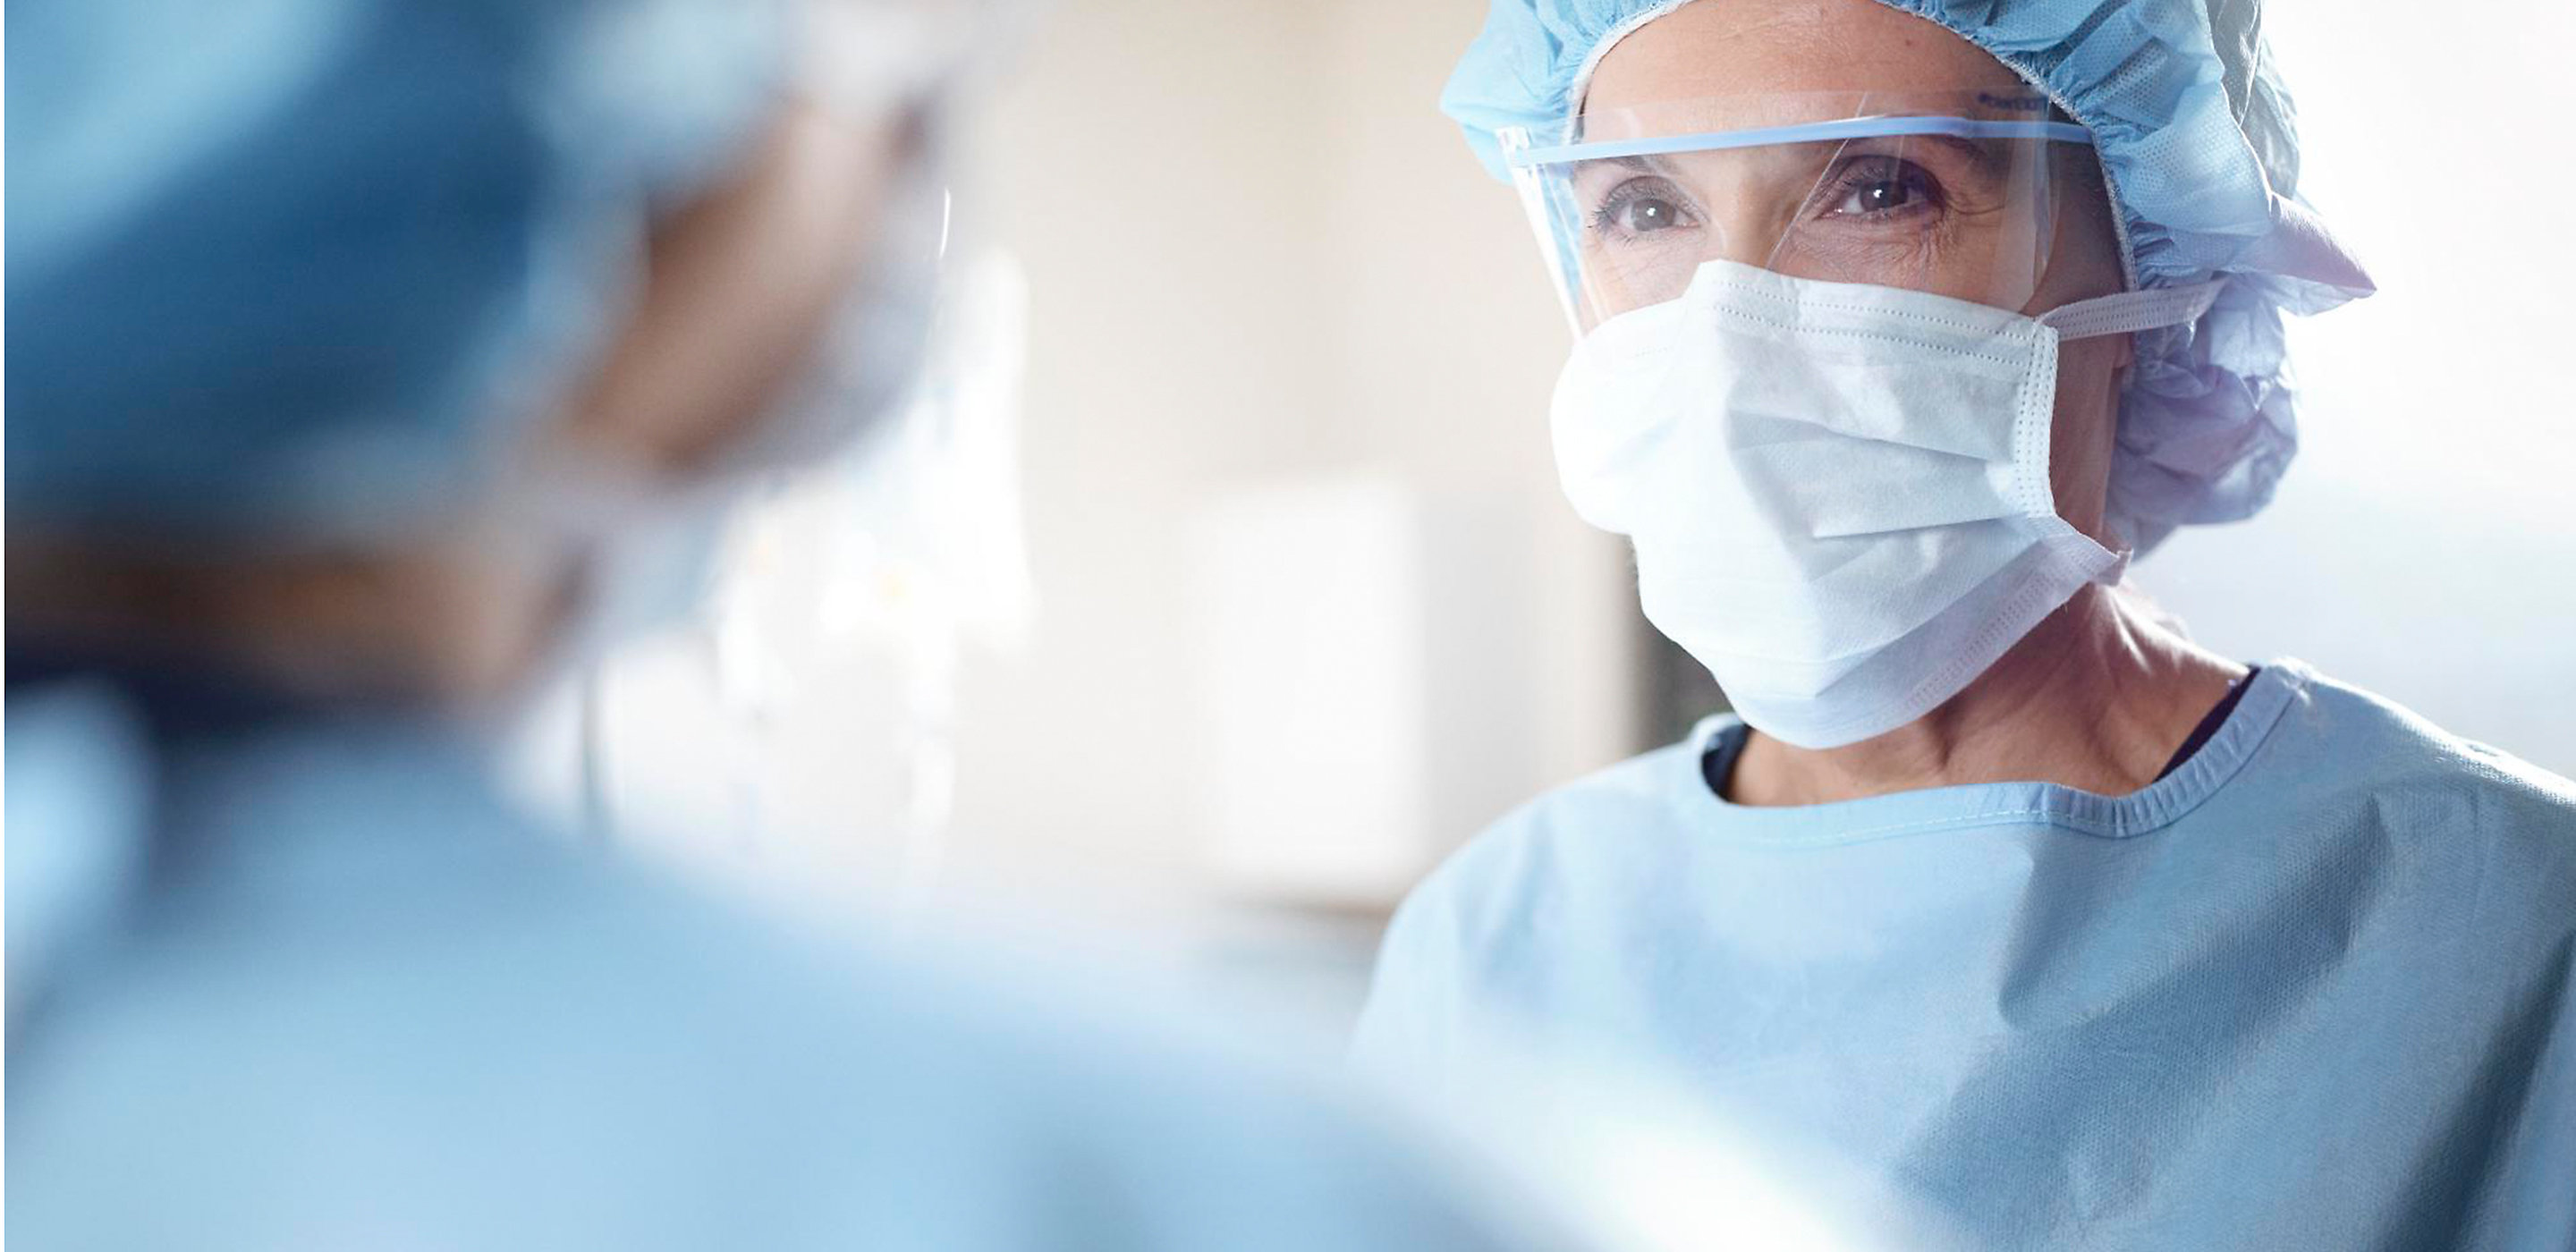 Close up of female surgeon in operating room